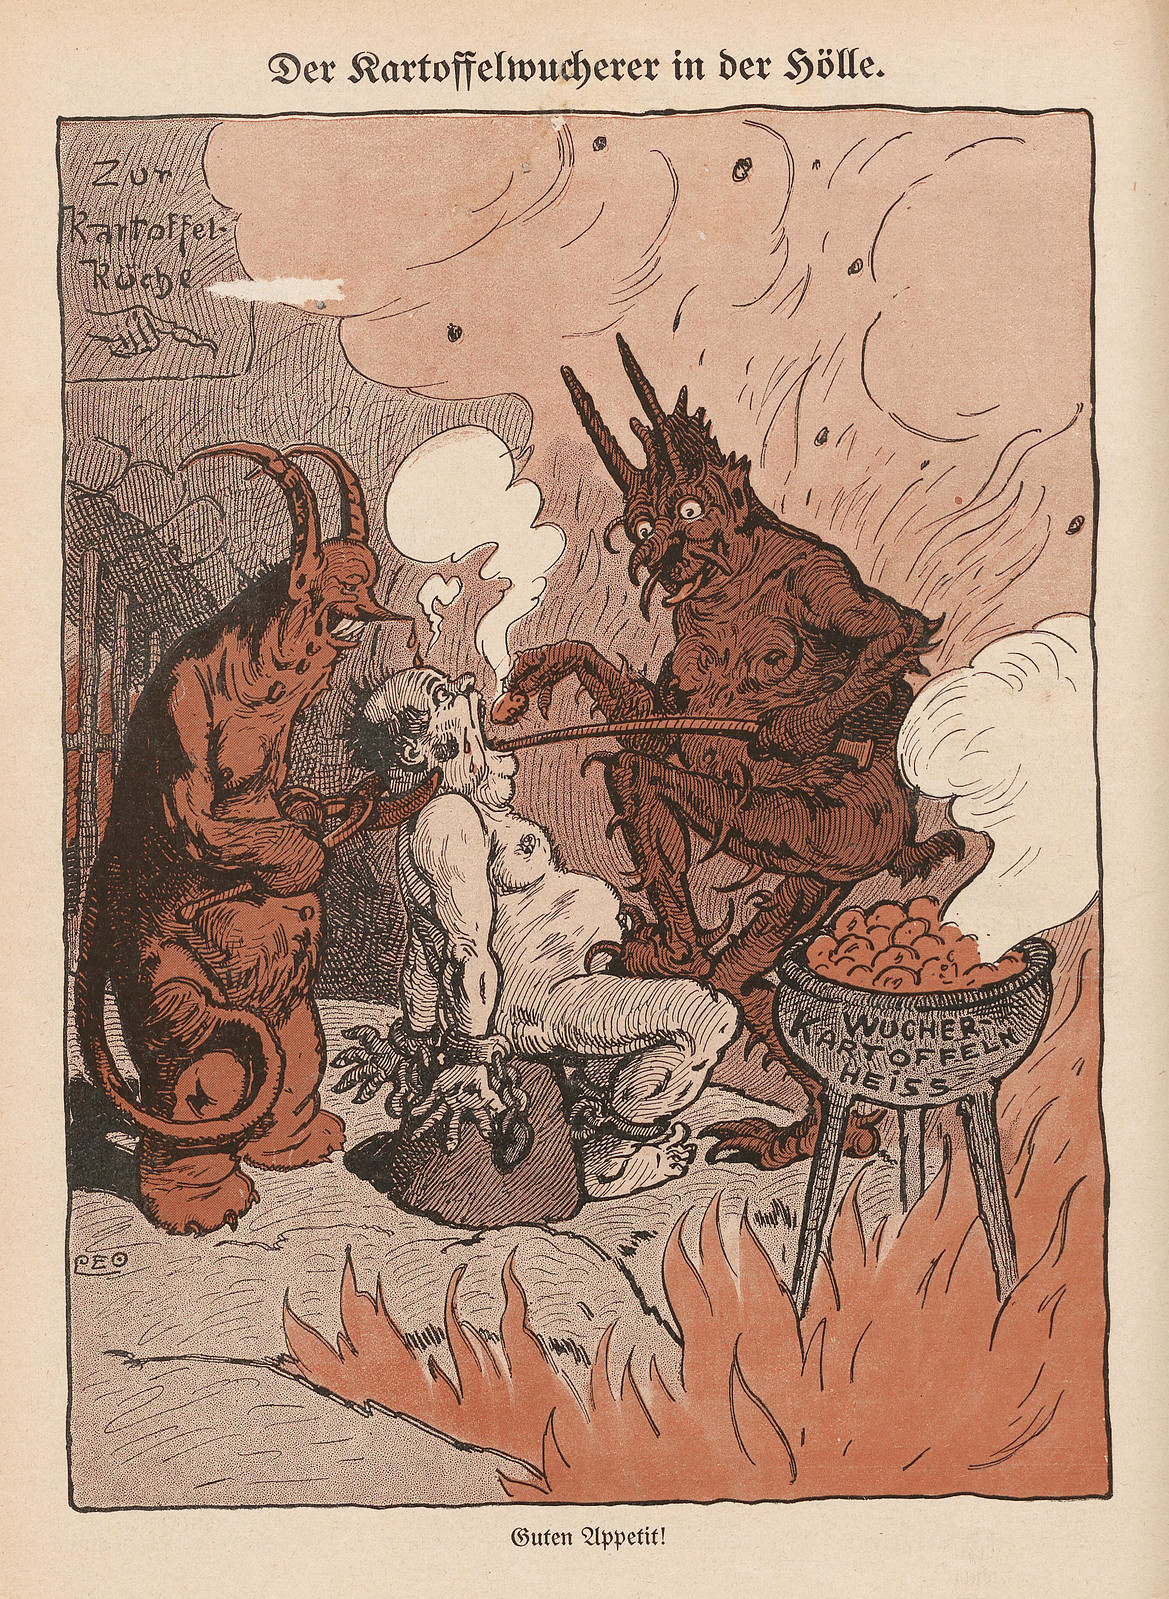 Monogramm Leo - The potato usurer in hell, 1915